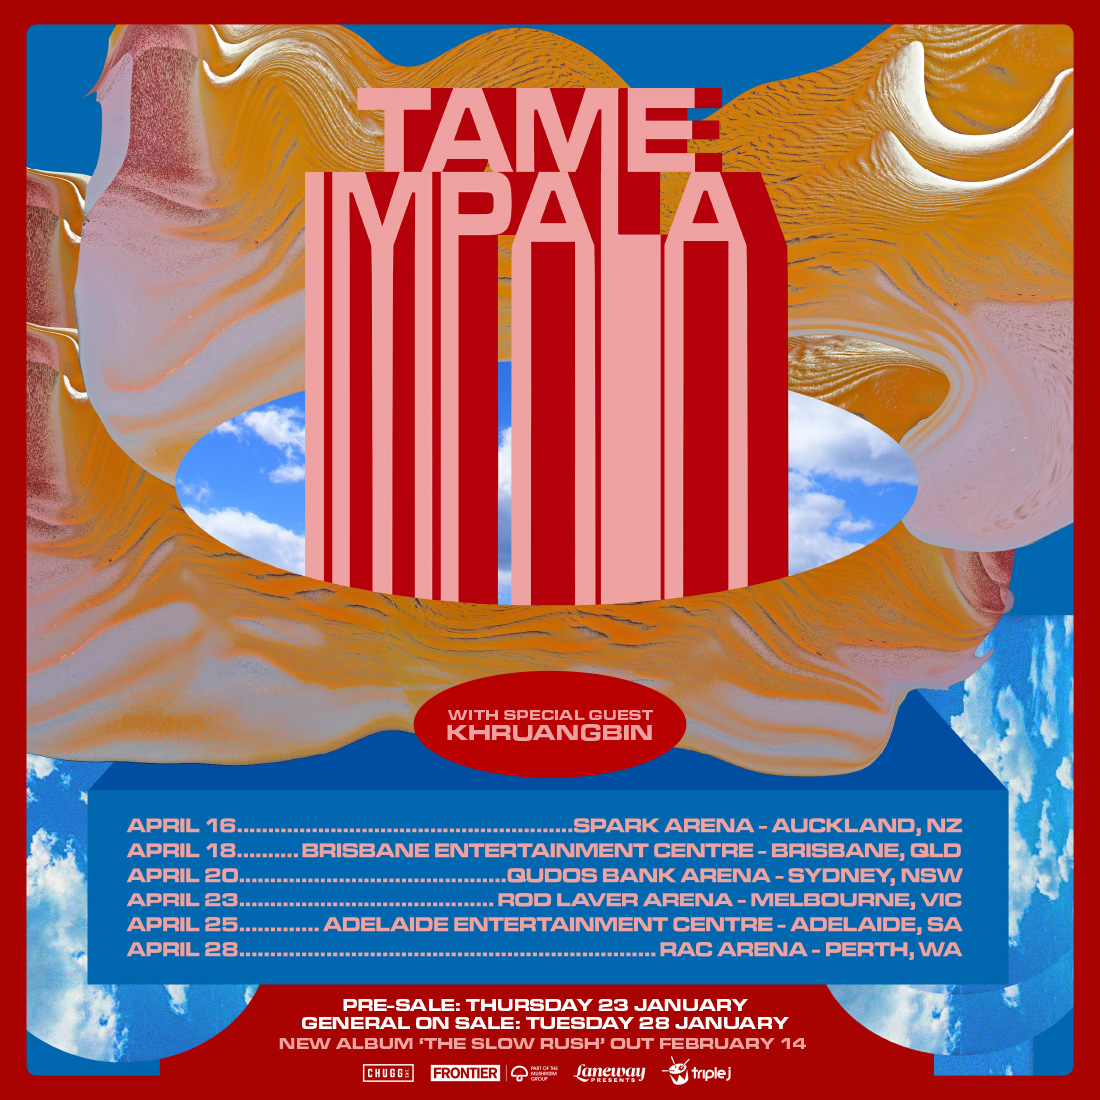 TAME IMPALA ANNOUNCE BIGGEST EVER AUSTRALIA & NZ TOUR FOR APRIL 2020